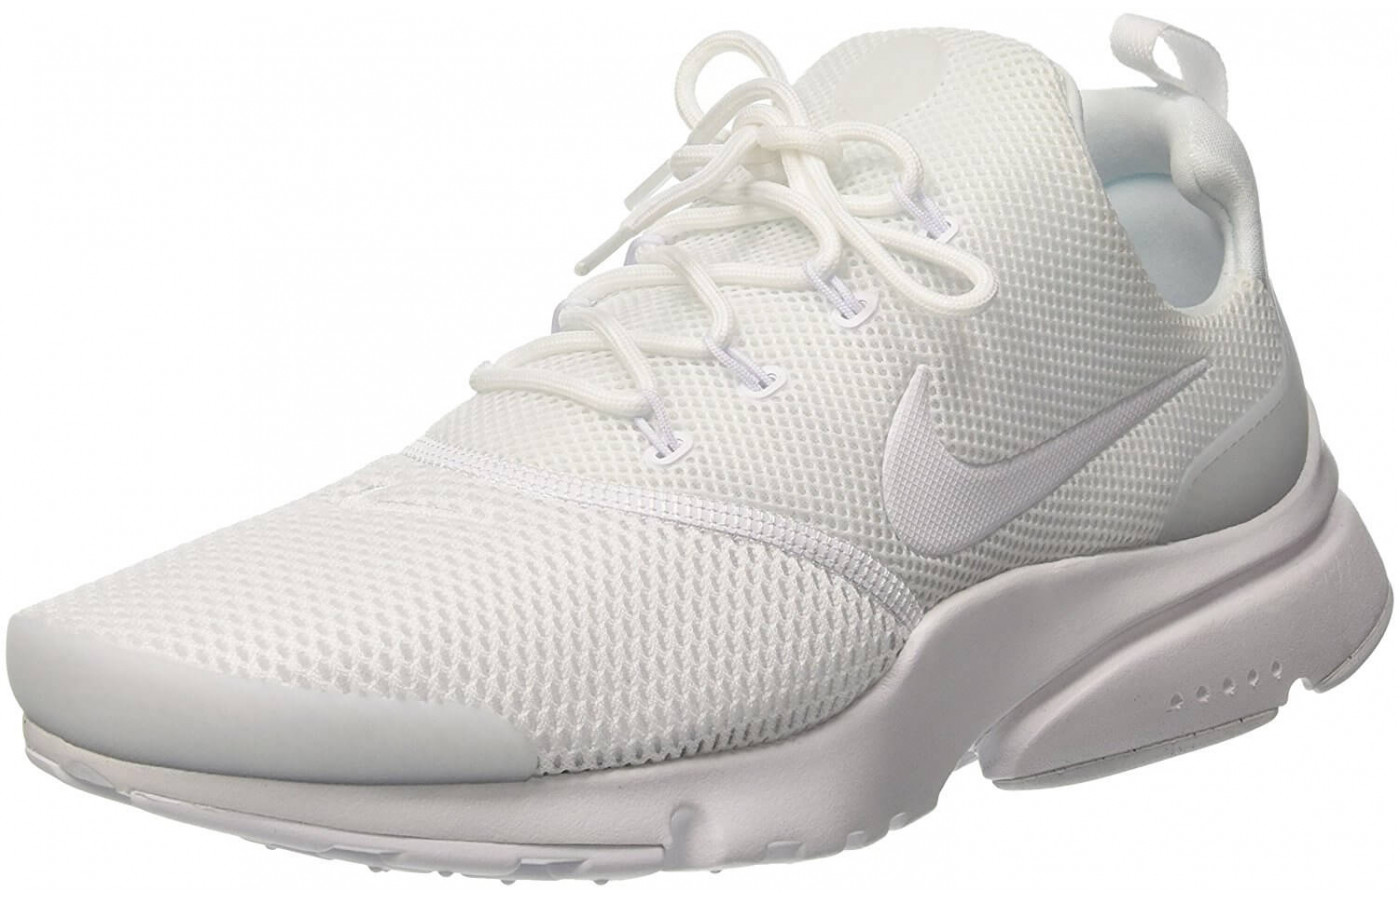 010841f31d127 This shoe comes in a wide variety of colors. The Nike Presto Fly is  lightweight ...